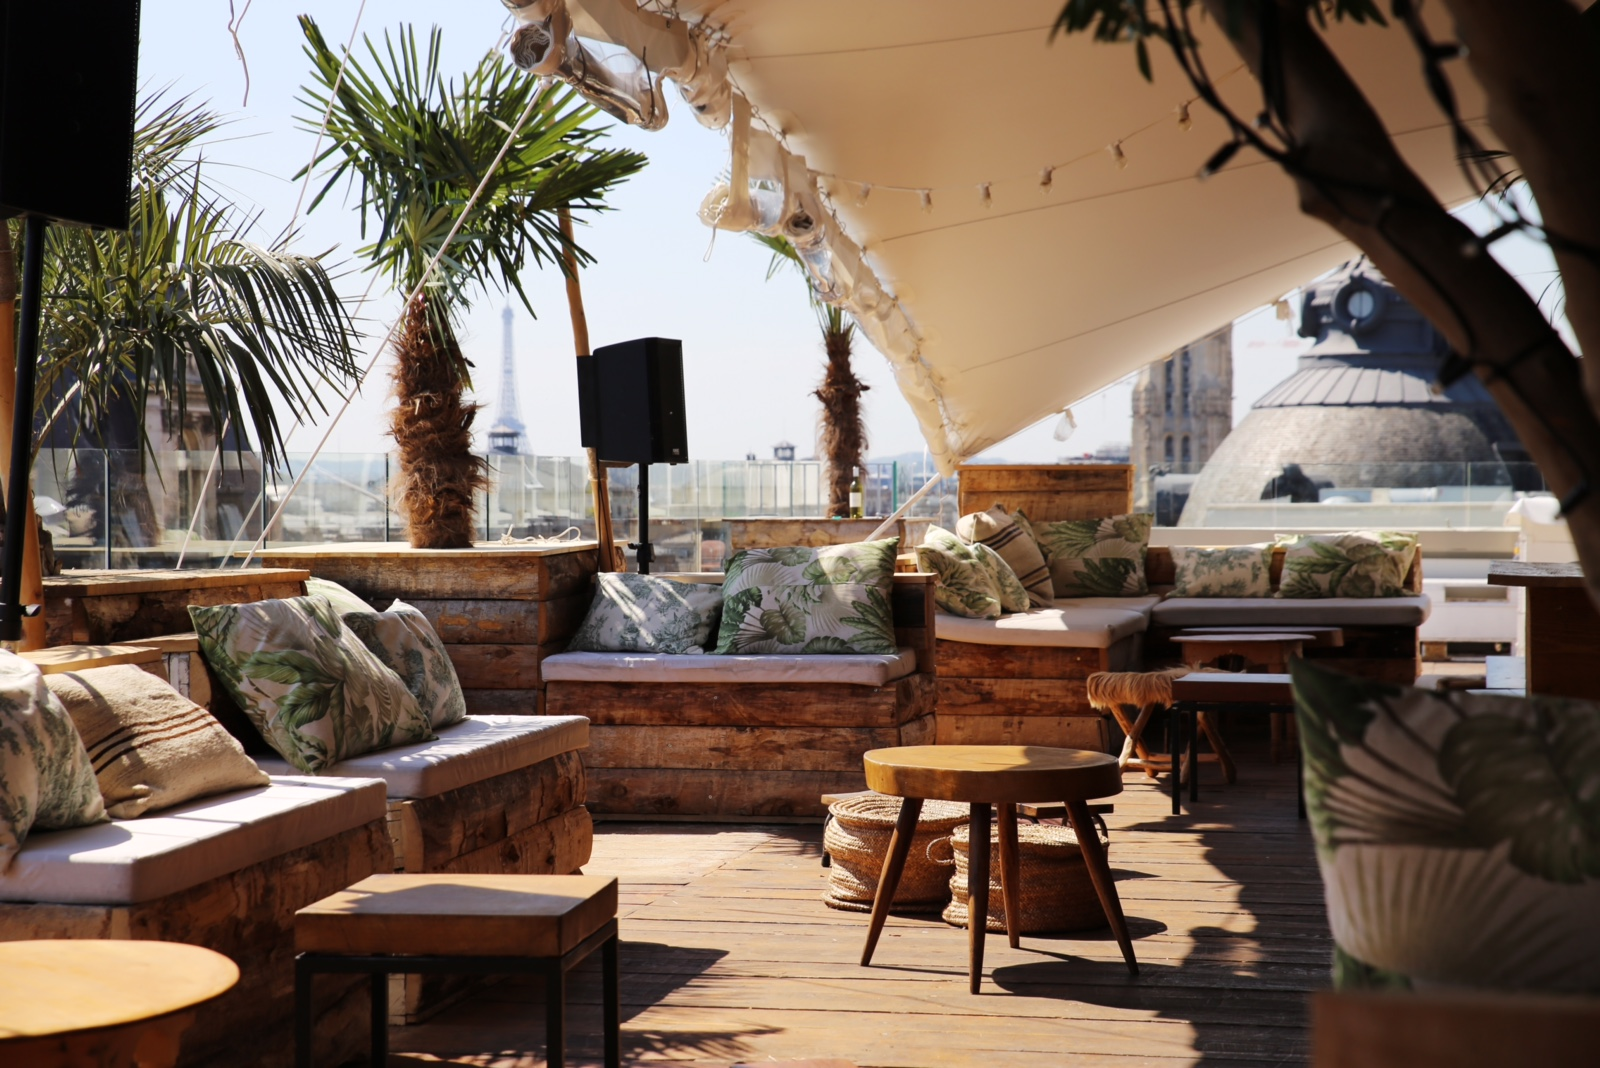 Bhv Paris Shopping And Rooftop Drinks Serious Cool Factor At Le Bhv